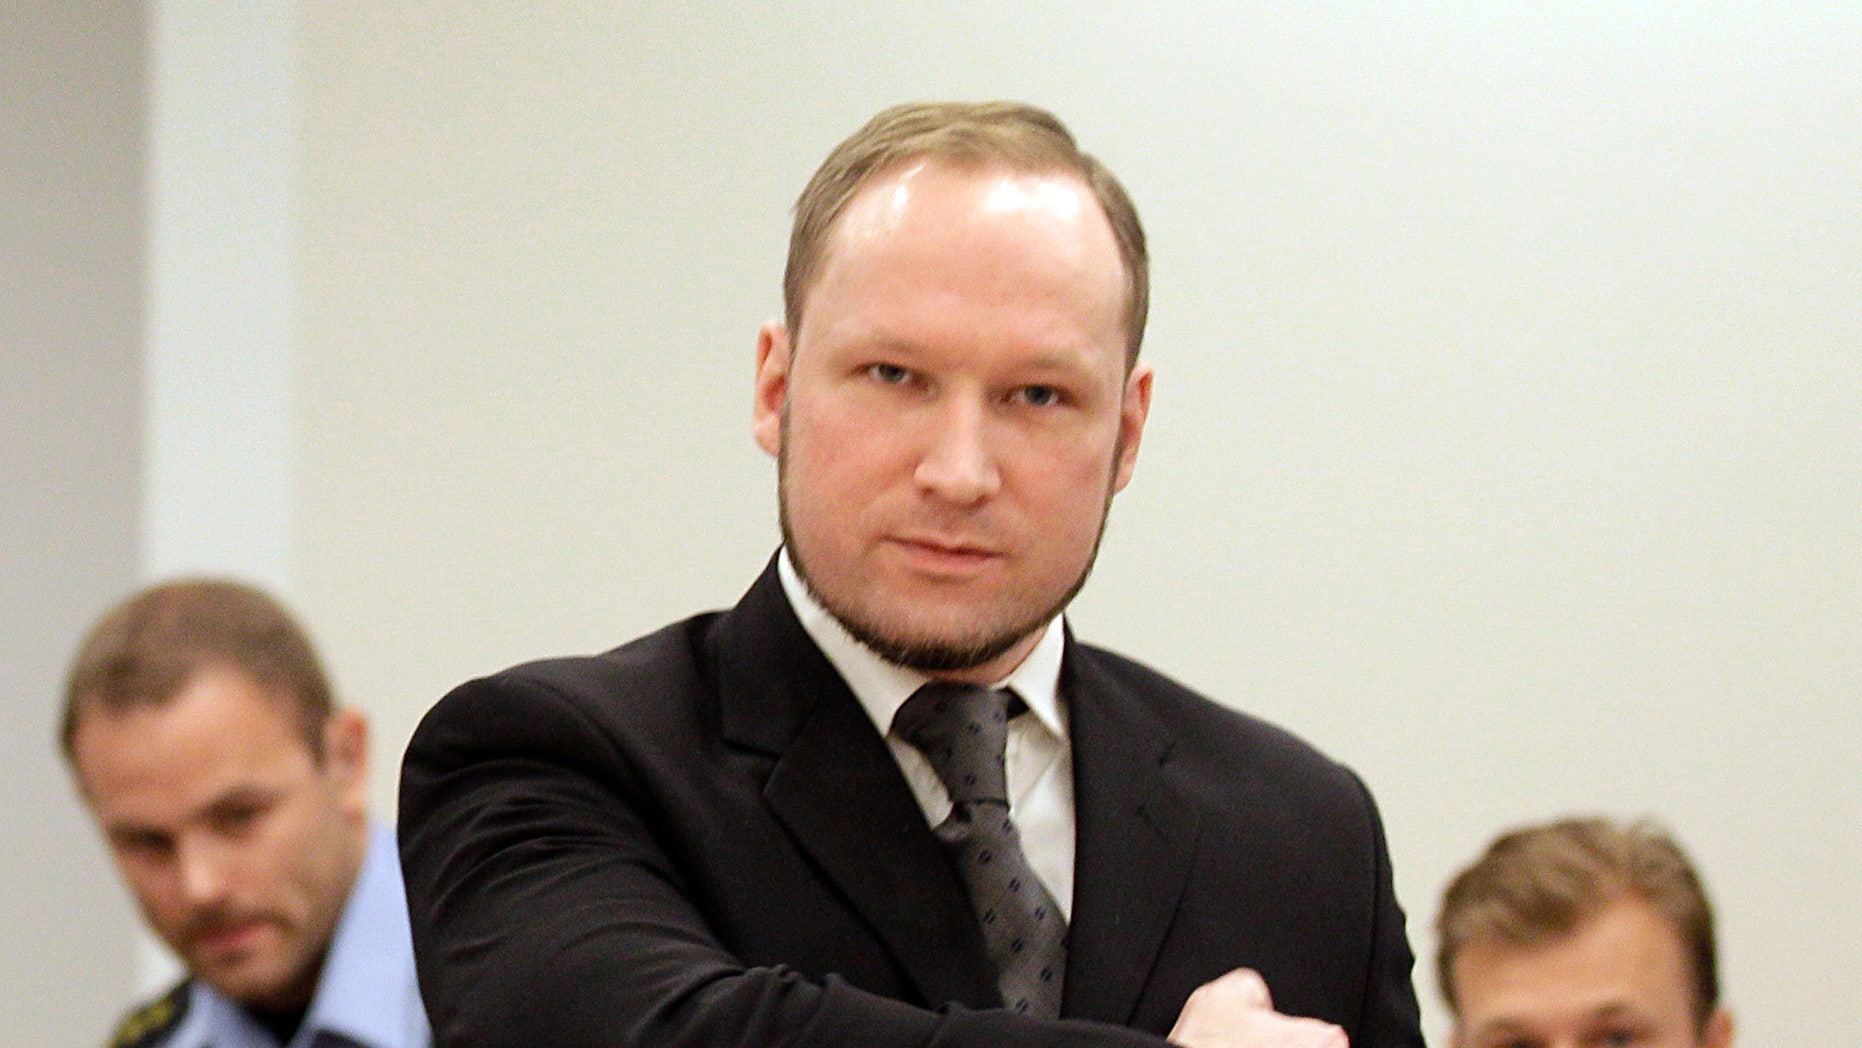 Aug. 24, 2012: Norwegian Anders Behring Breivik gestures as he arrives at the courtroom in Oslo, Norway. Anders Behring Breivik has been declared sane and sentenced to prison for bomb and gun attacks that killed 77 people last year.